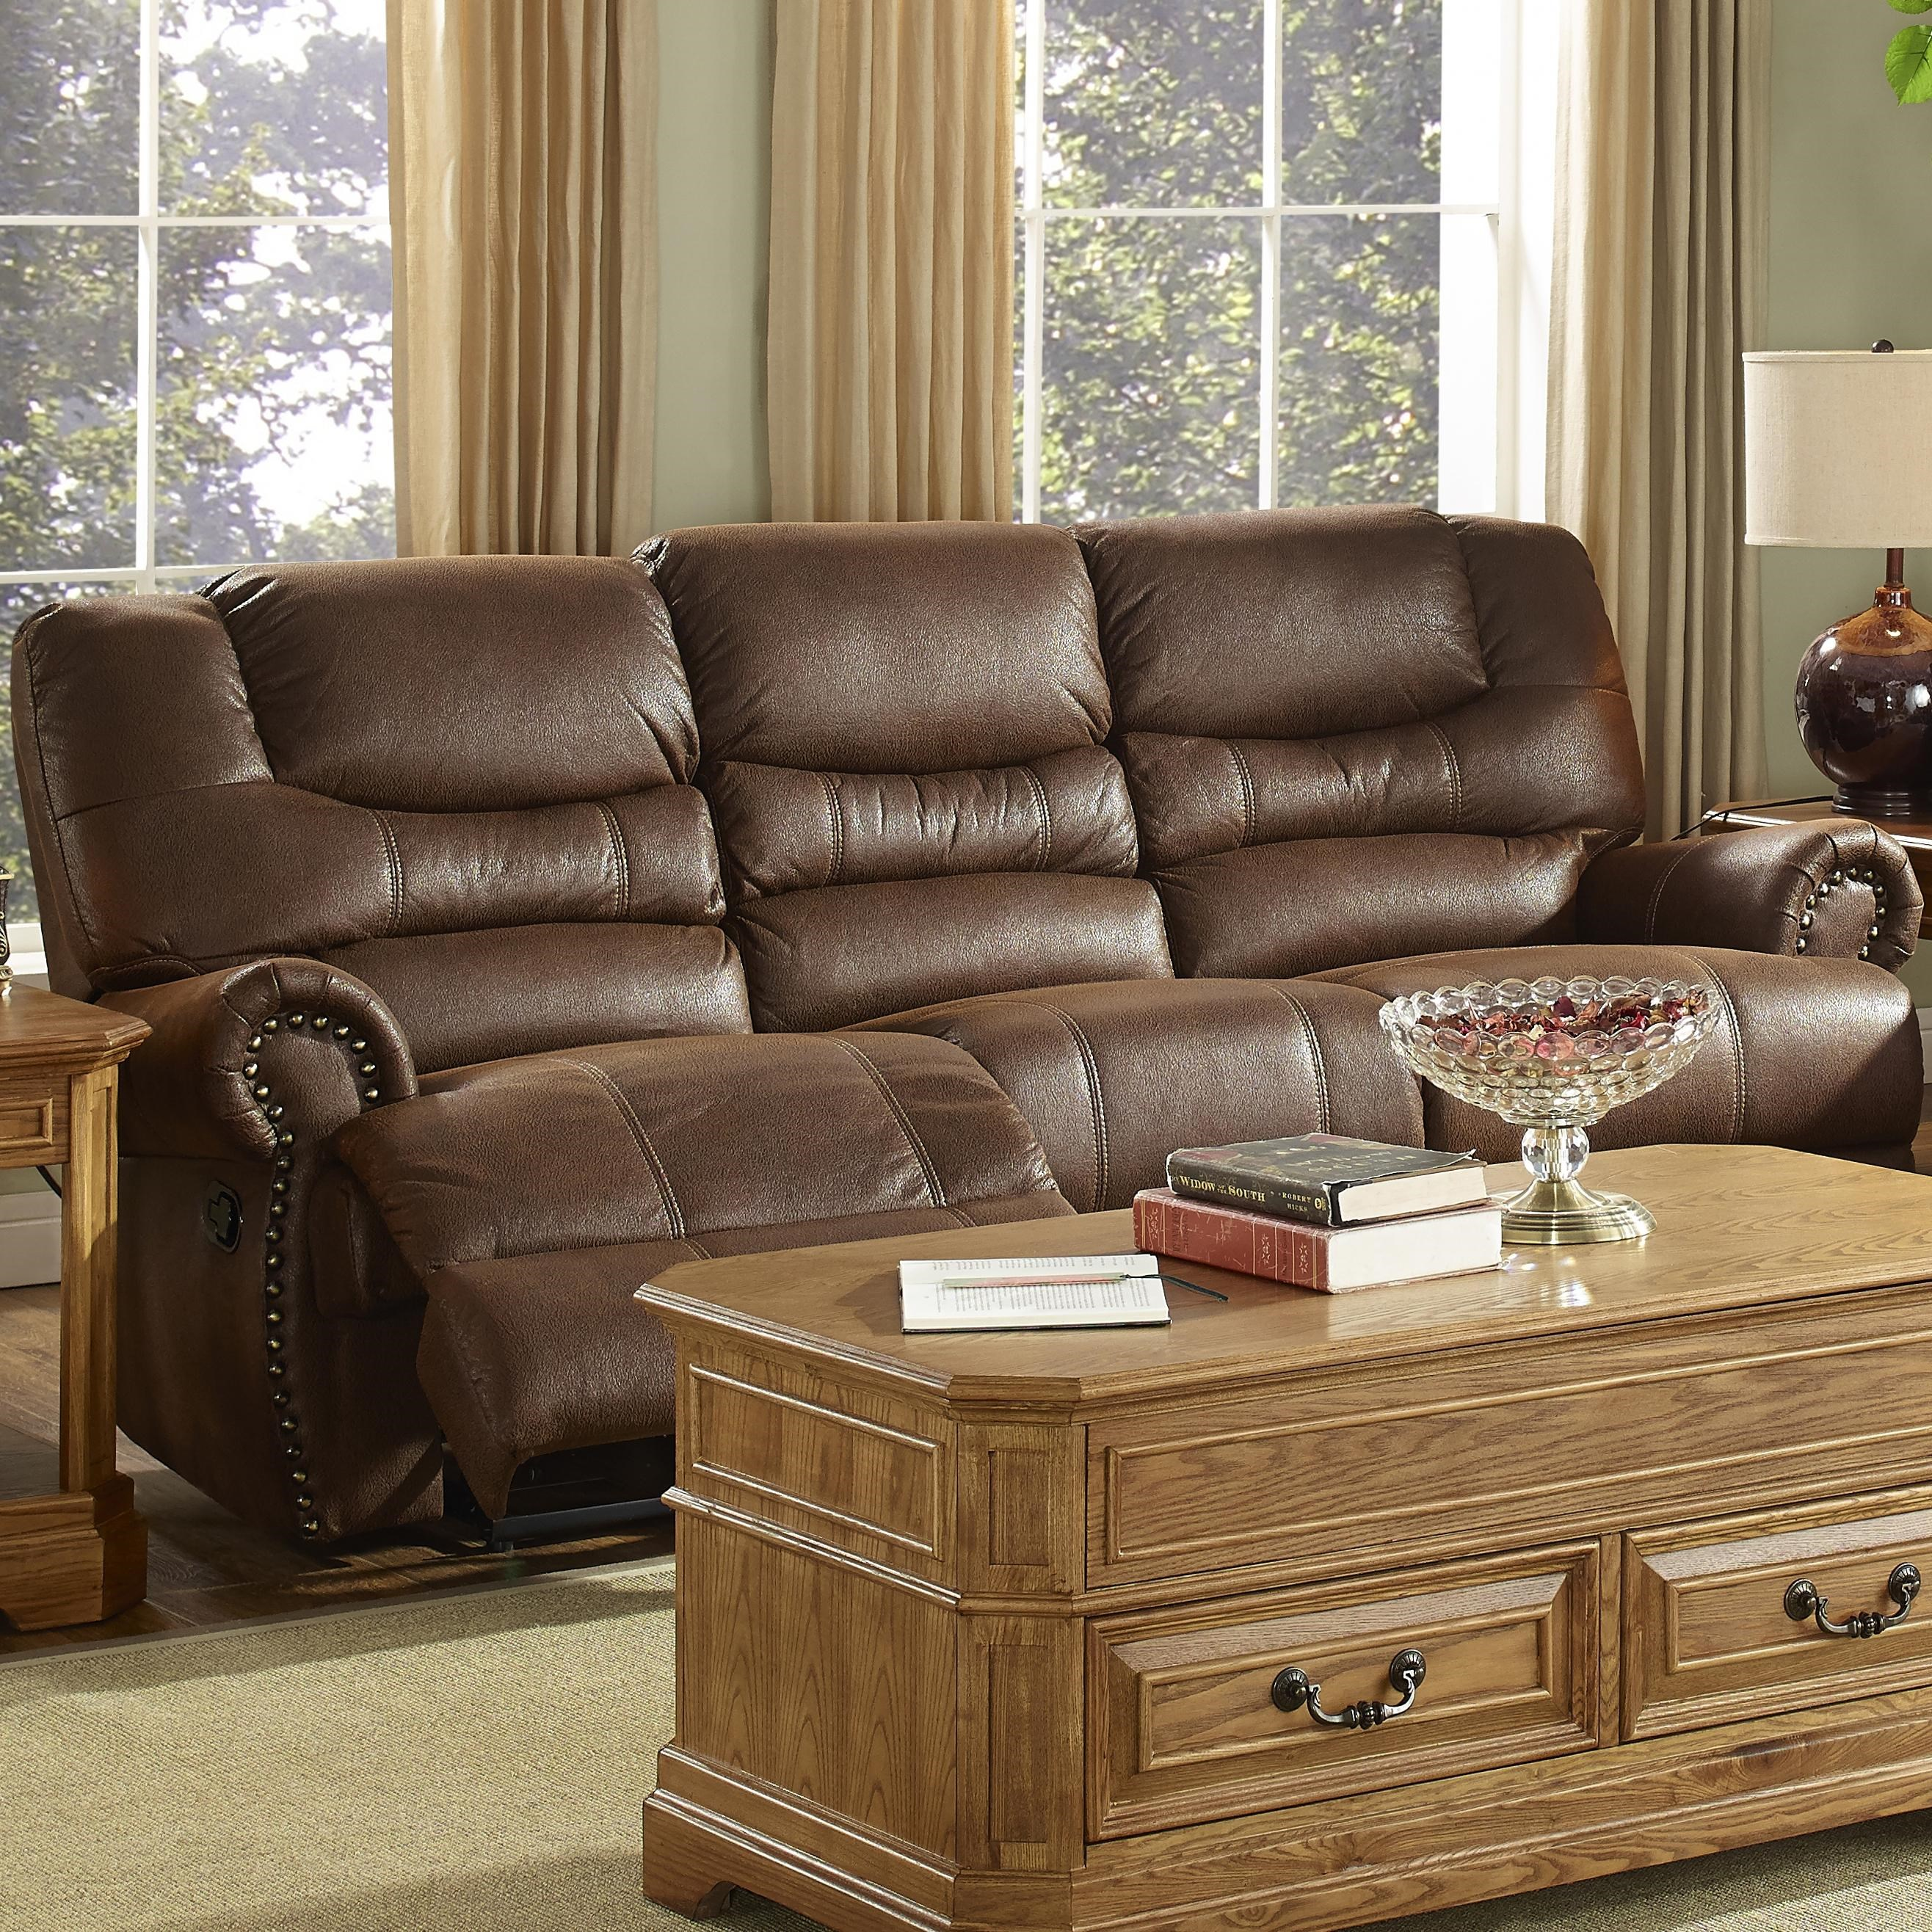 Charmant New Classic Laredo Traditional Dual Reclining Sofa With Rolled Arms